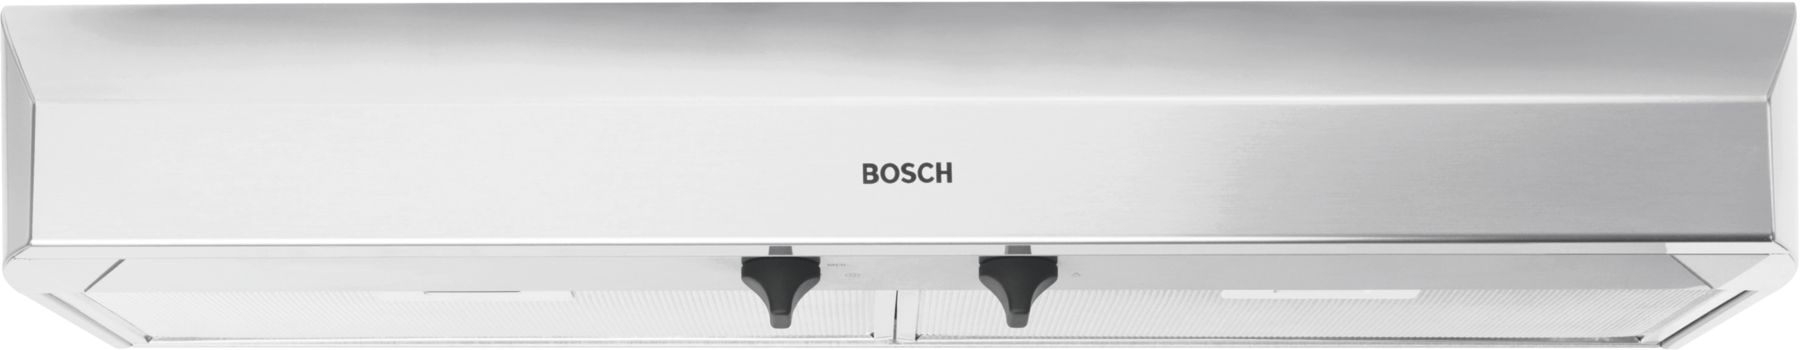 "Bosch 300 Series36"" Under-cabinet Hood, 280 CFM, DUH36152UC, Stainless Steel"